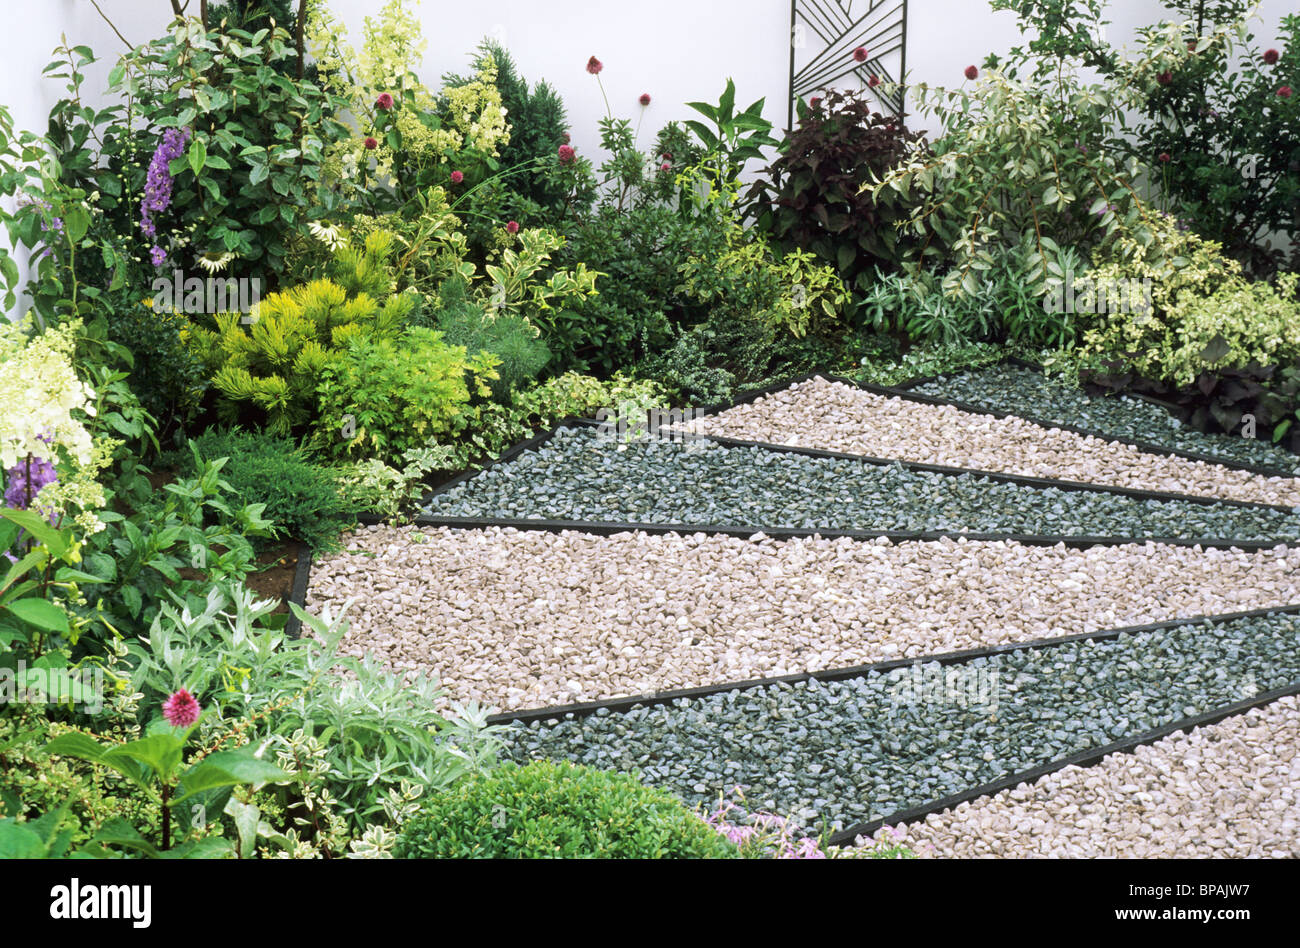 Pebble coloured gravel garden sandringham flower show for Garden design ideas cyprus